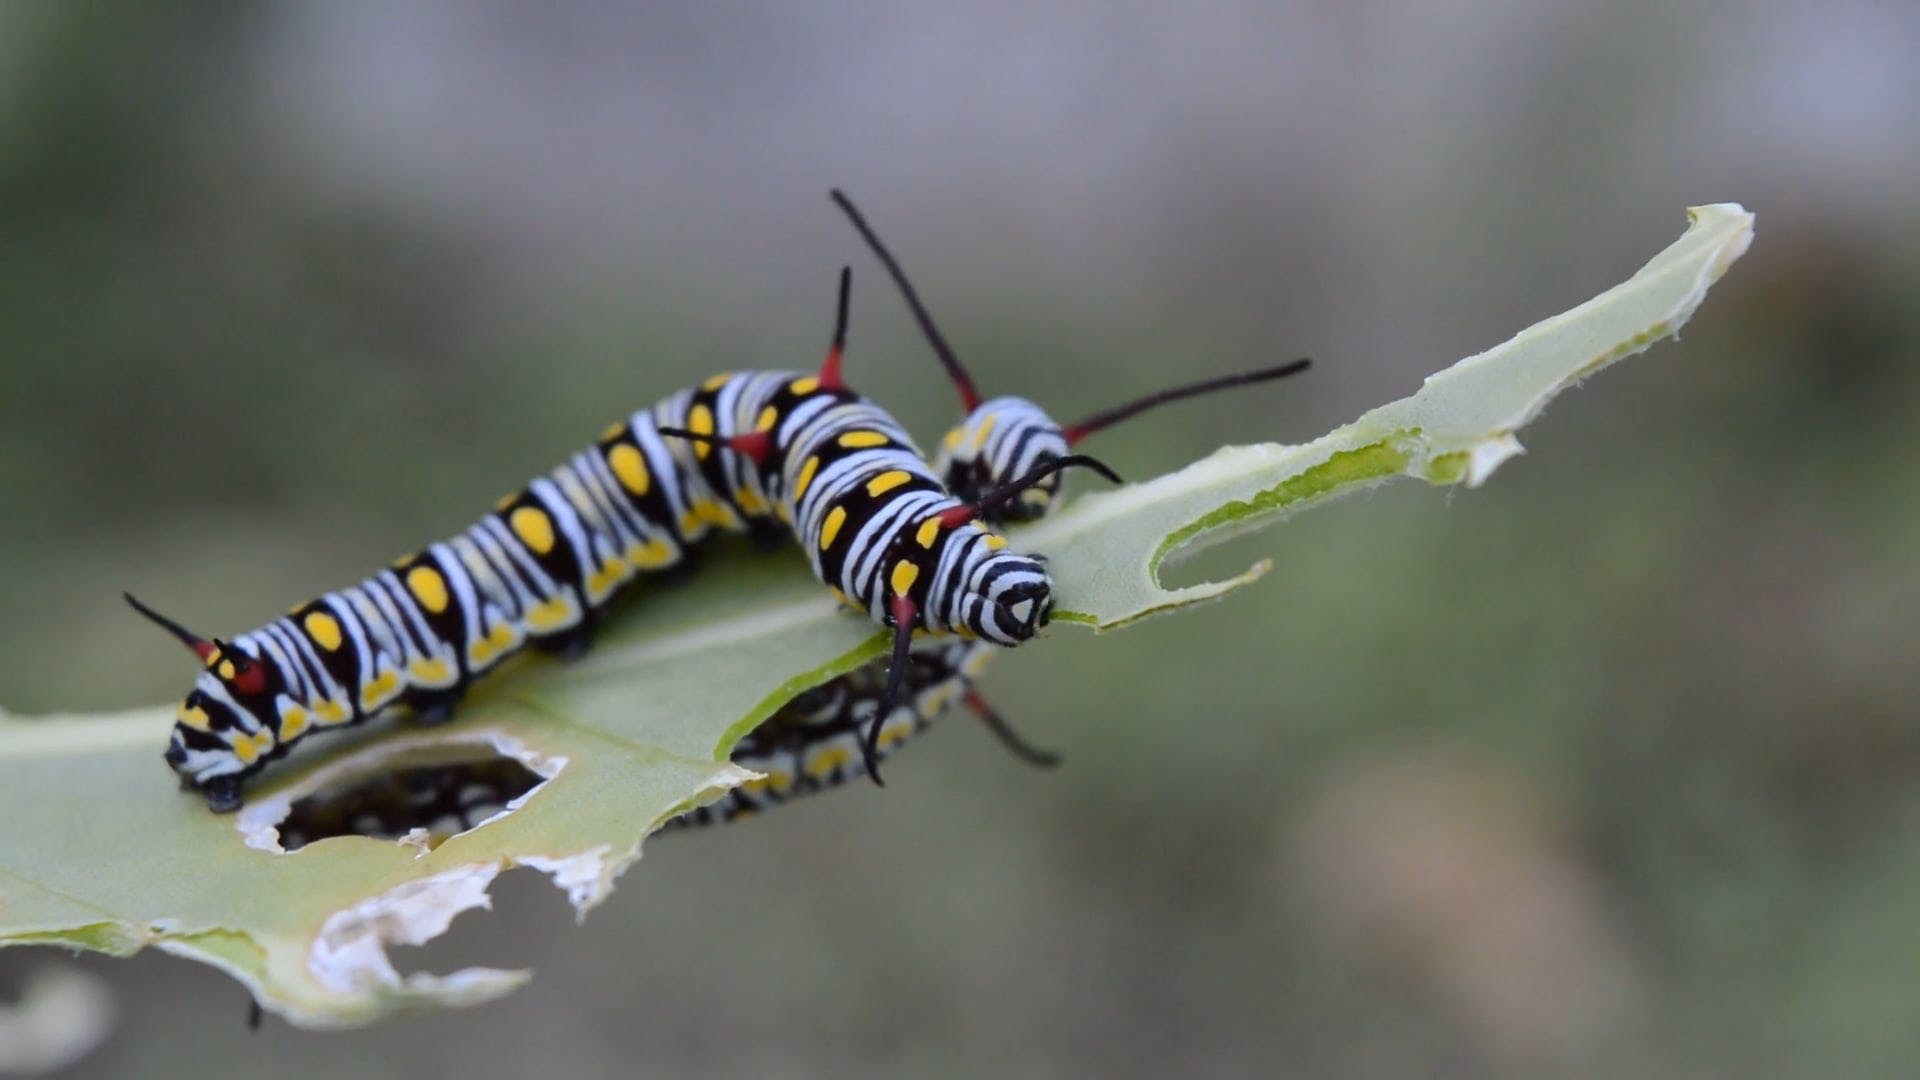 Caterpillars Eating